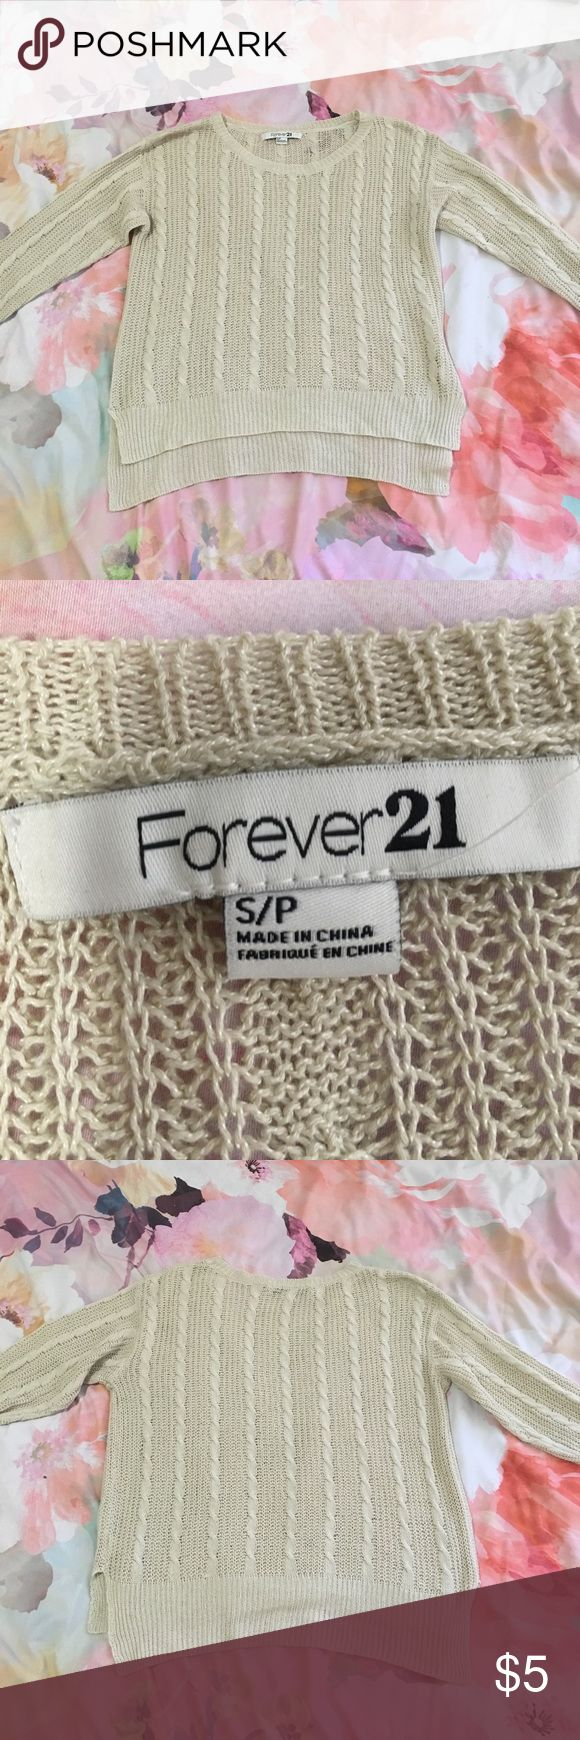 Creme knit sweater from Forever 21 Size small, Forever 21 sweater, simple, slightly longer in the back than the front Forever 21 Sweaters